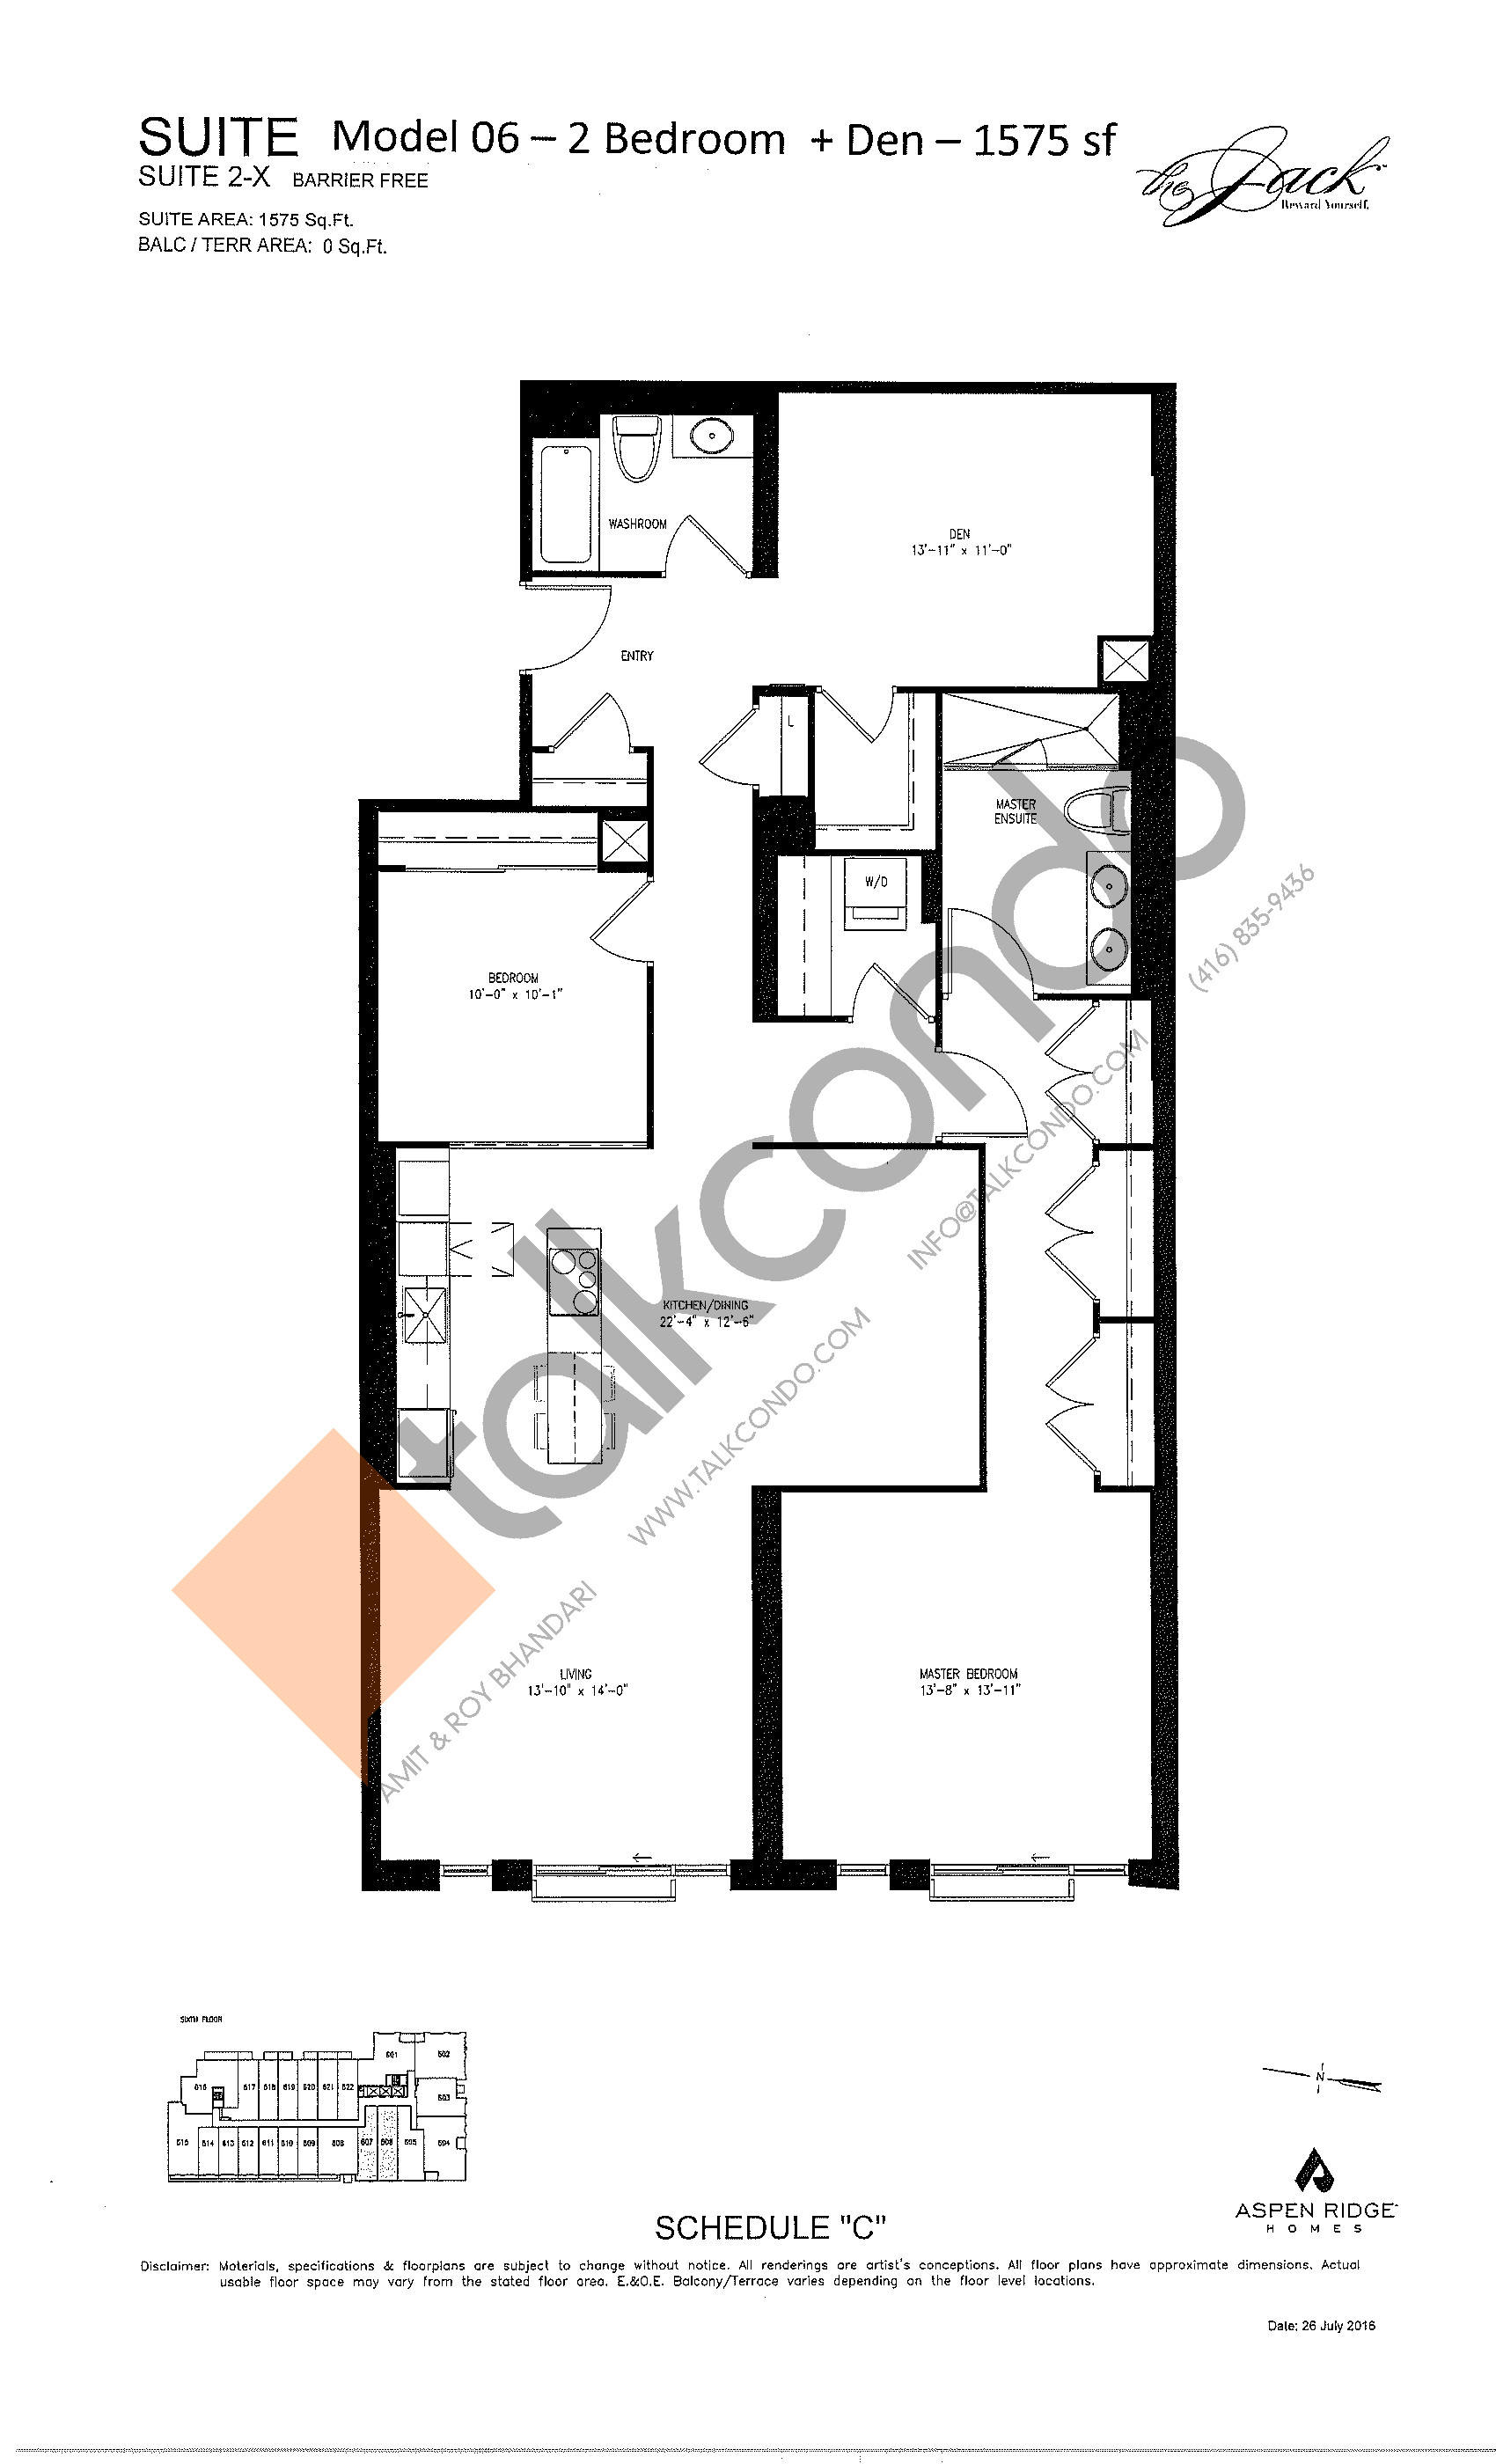 Suite 2-X Floor Plan at The Jack Condos - 1575 sq.ft